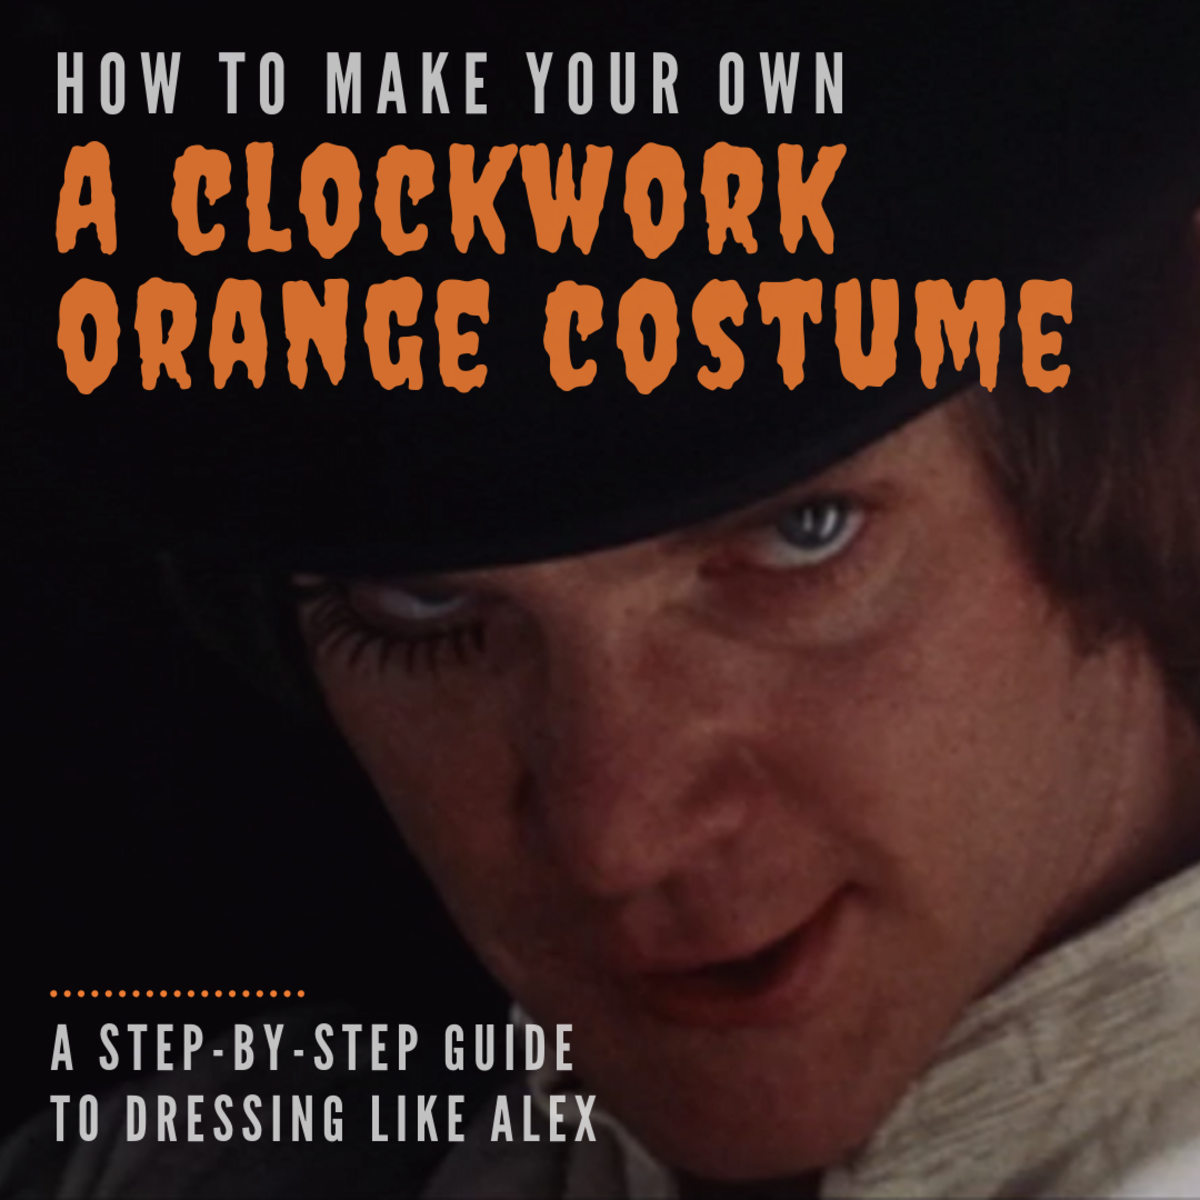 Learn how to look like Malcolm McDowell's character from the film.